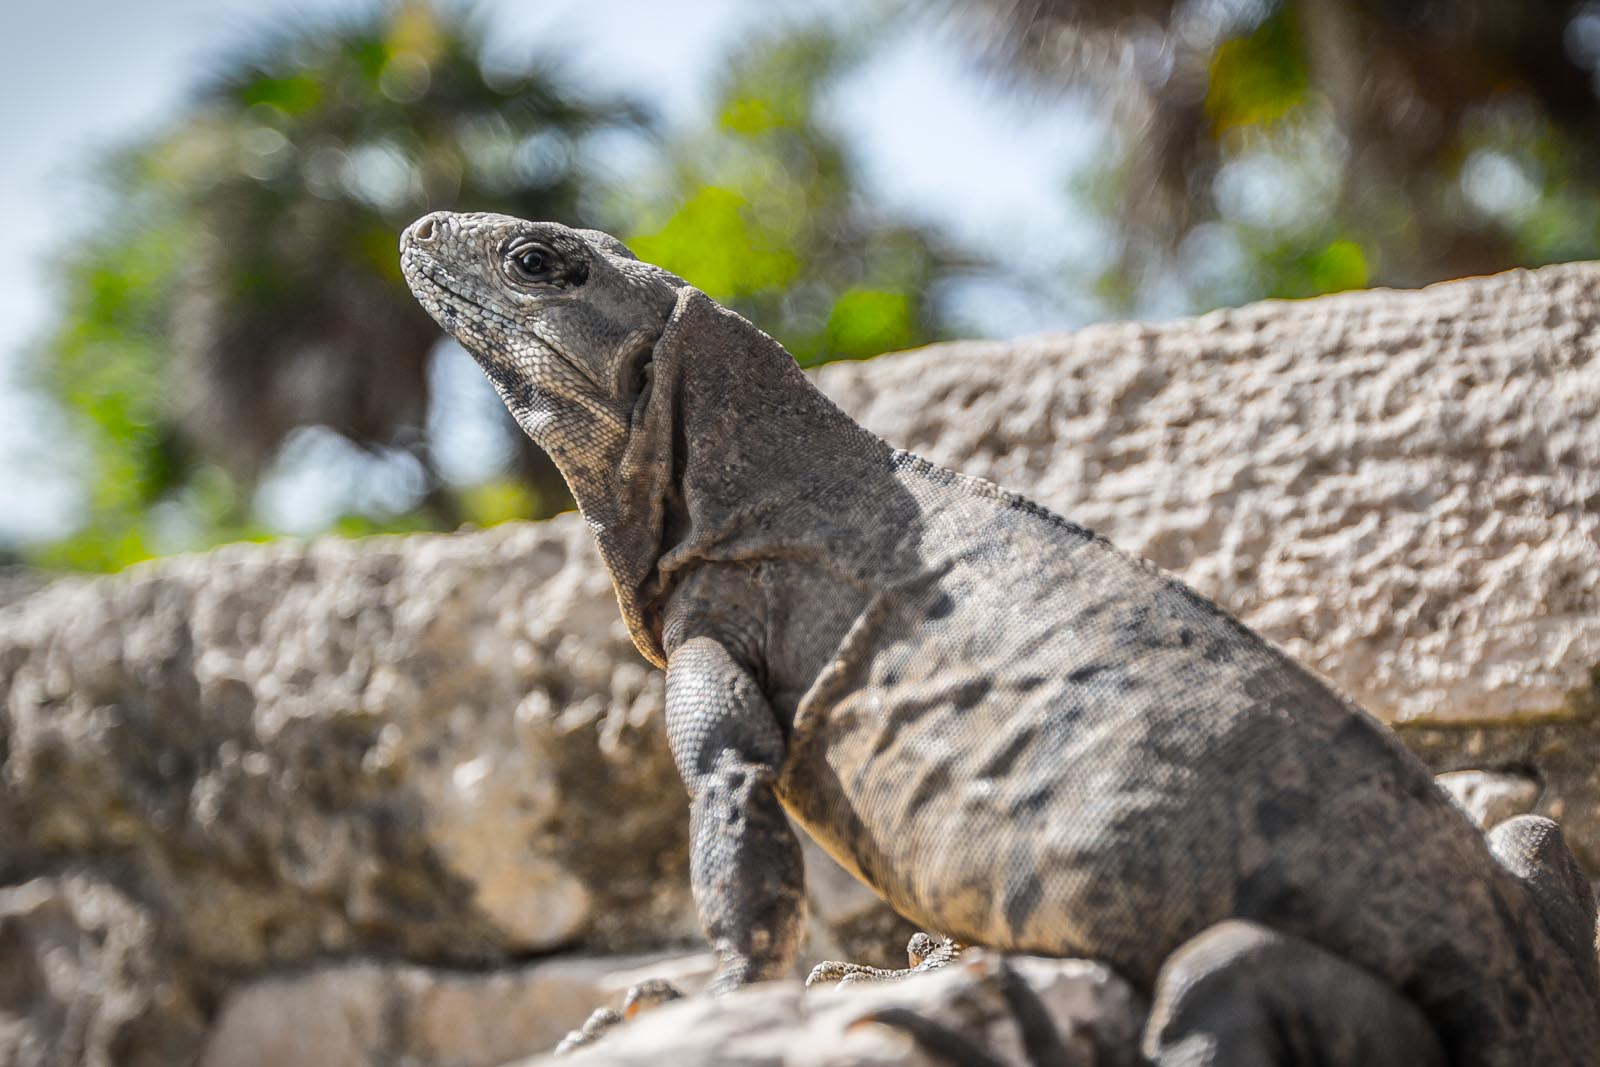 Proud, not so little, iguana hanging out at the ruins in Tulum.